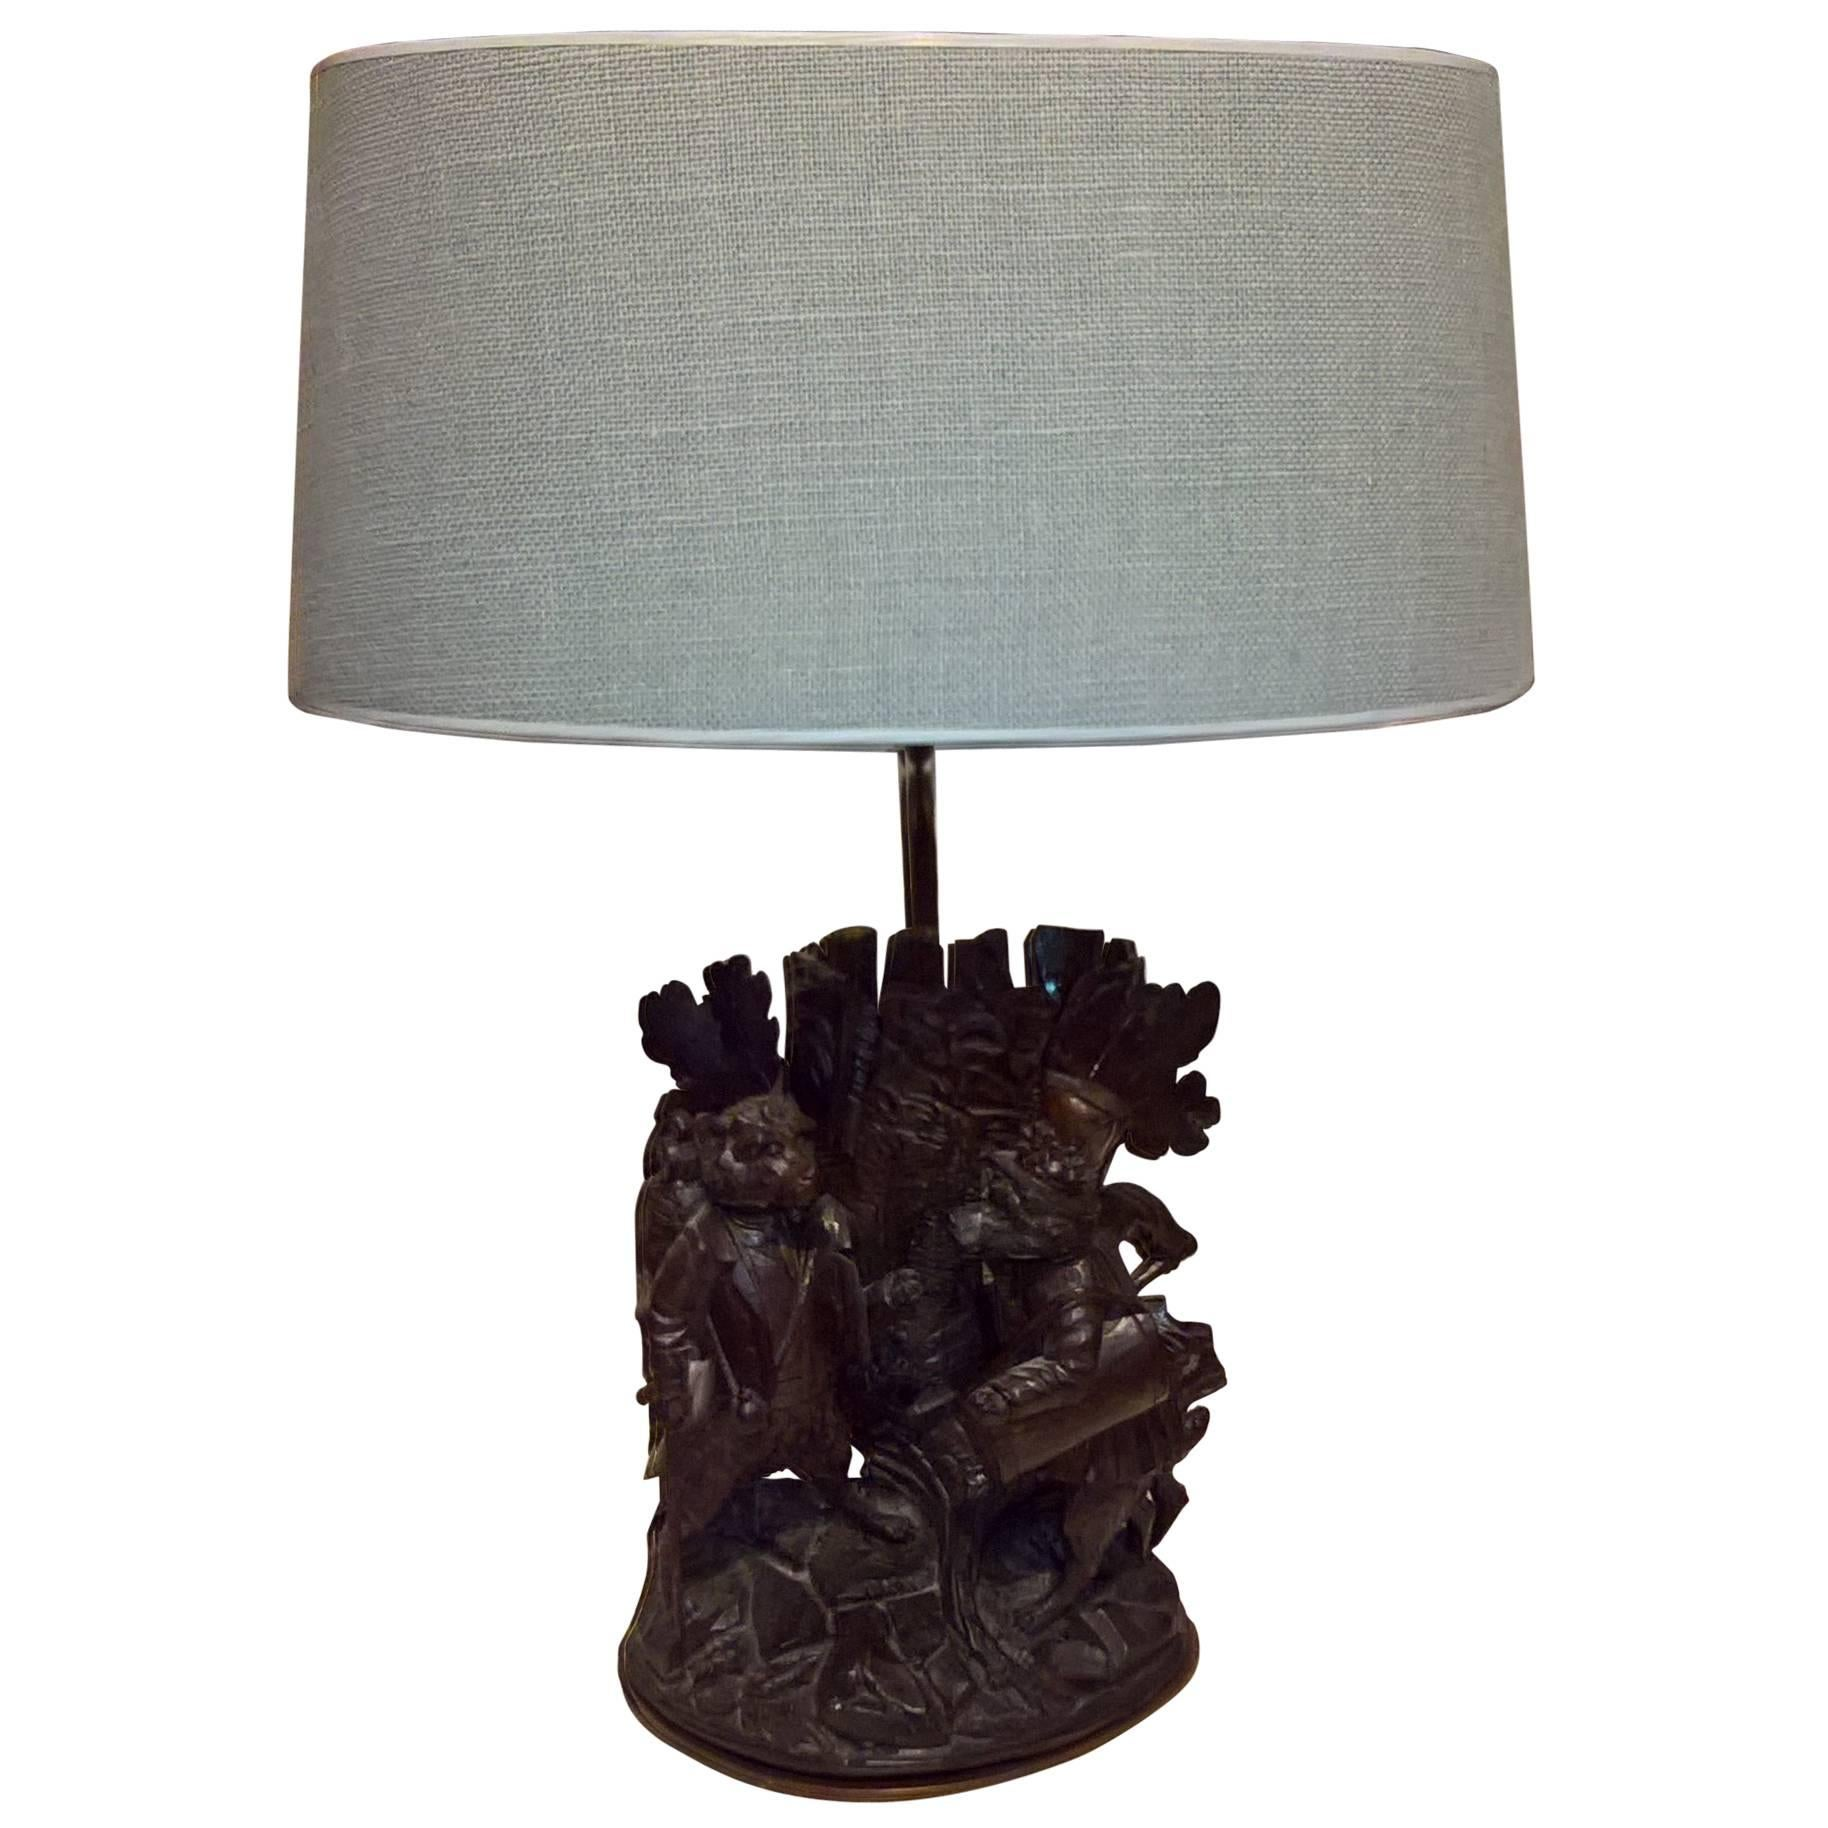 Black Forest  Swiss Table Lamp Wood Hand-Carved Sculpture